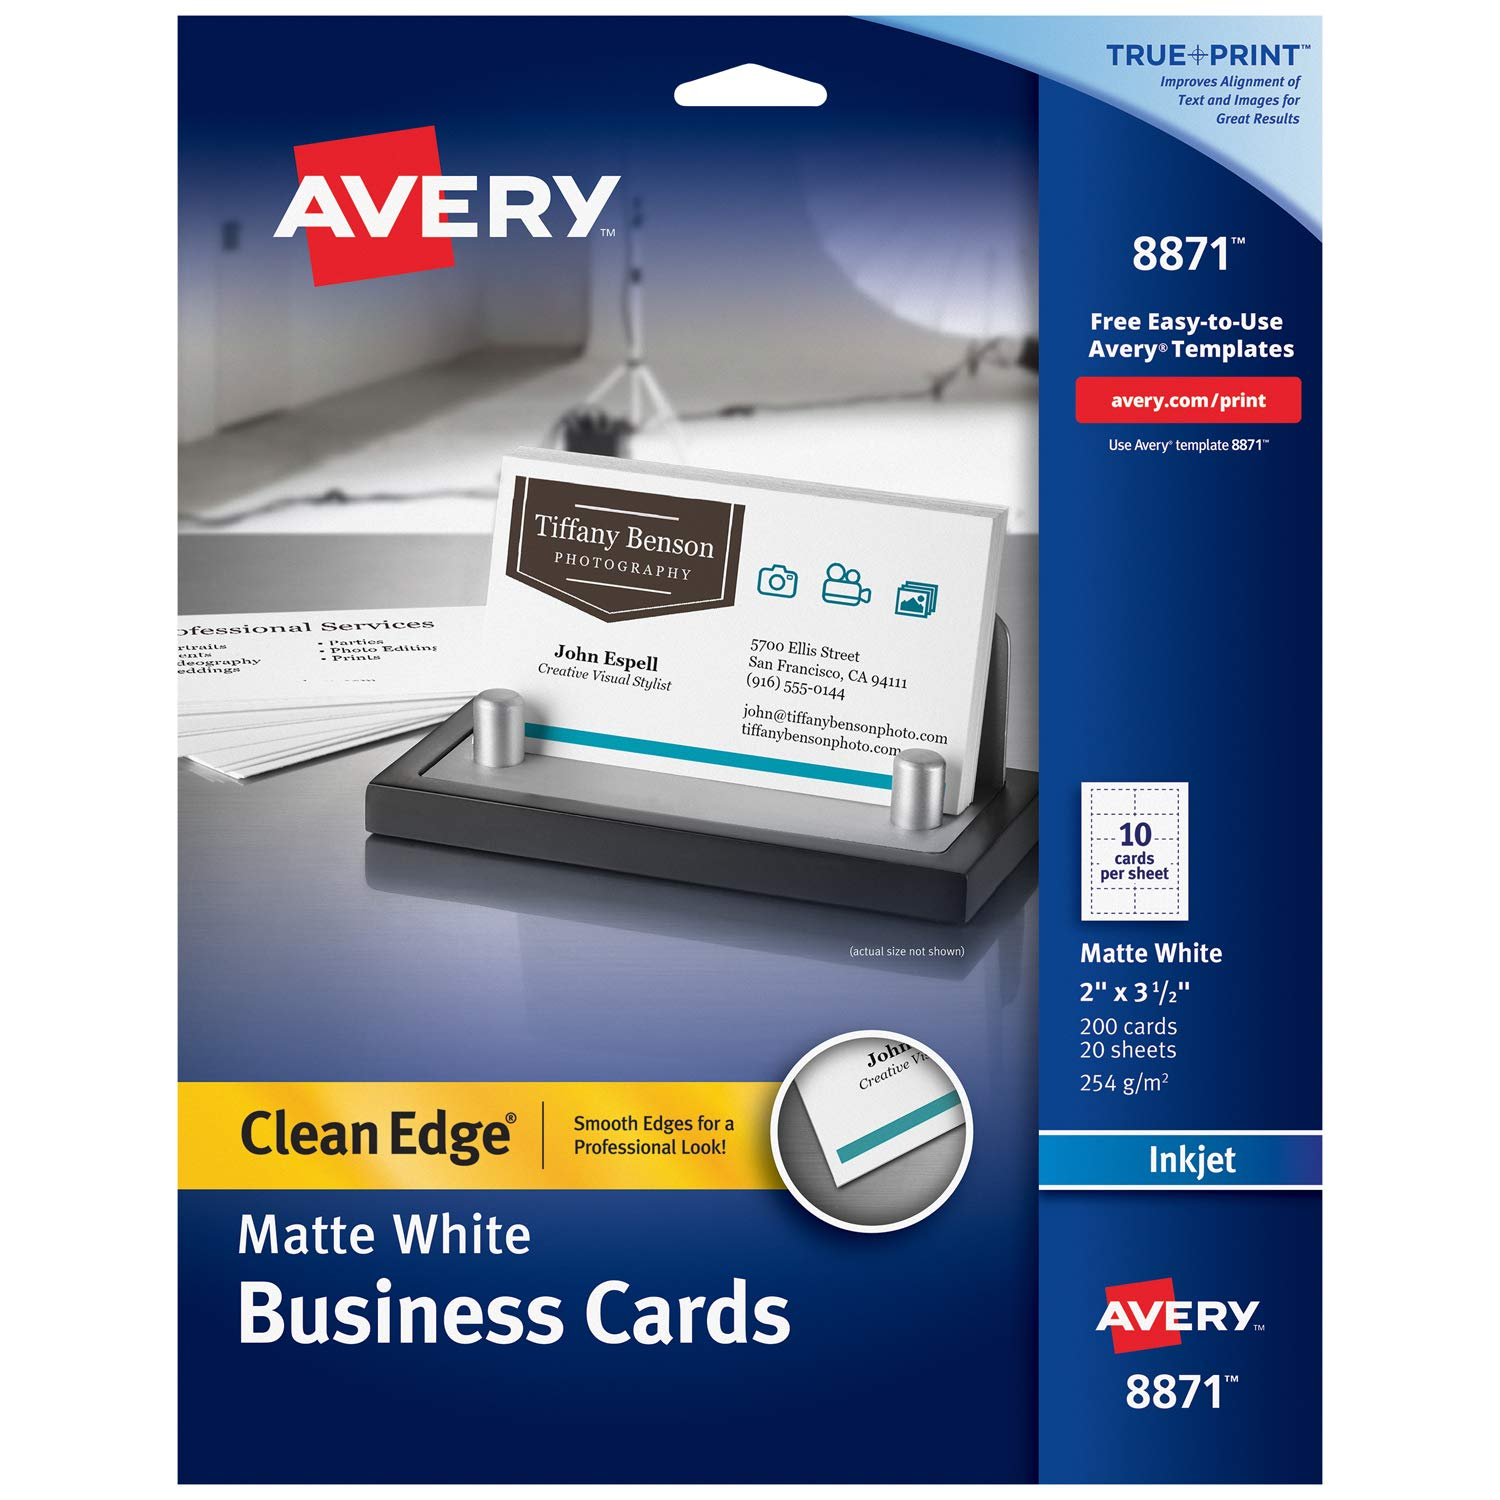 Avery Printable Business Cards, Inkjet Printers, 200 Cards, 2 x 3.5, Clean Edge, Heavyweight (8871), White by AVERY